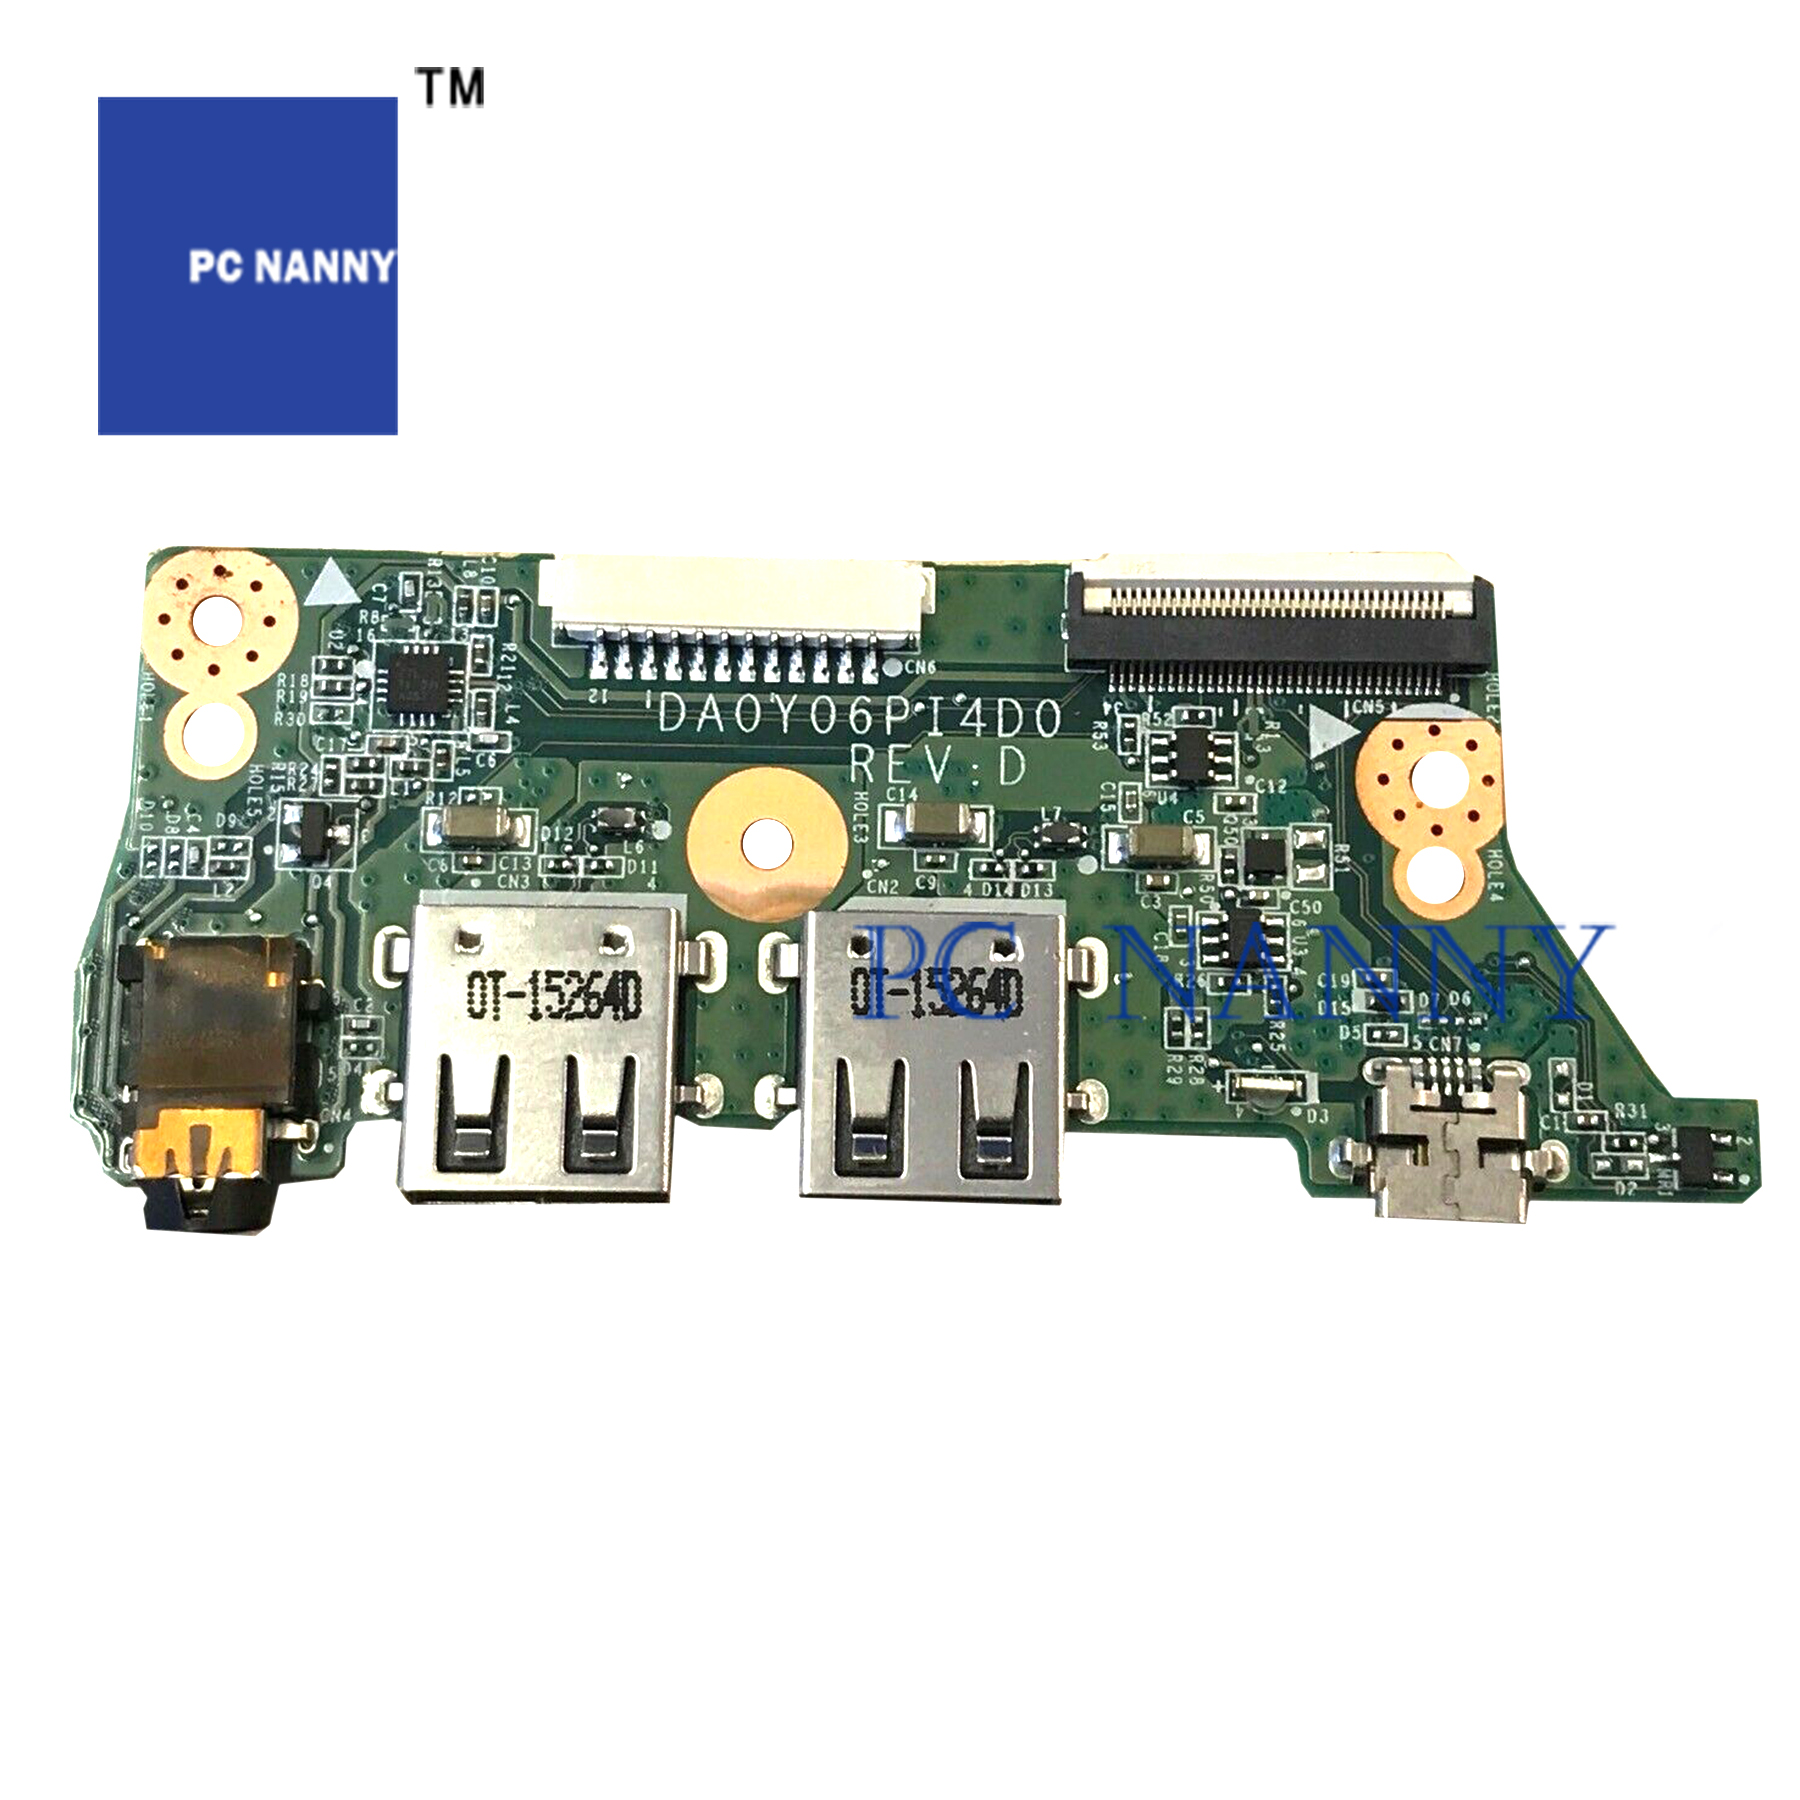 two USB 2.0 ports HP 761971-001 I//O board and micro-USB charging jack audio jack Includes cable ribbon cable